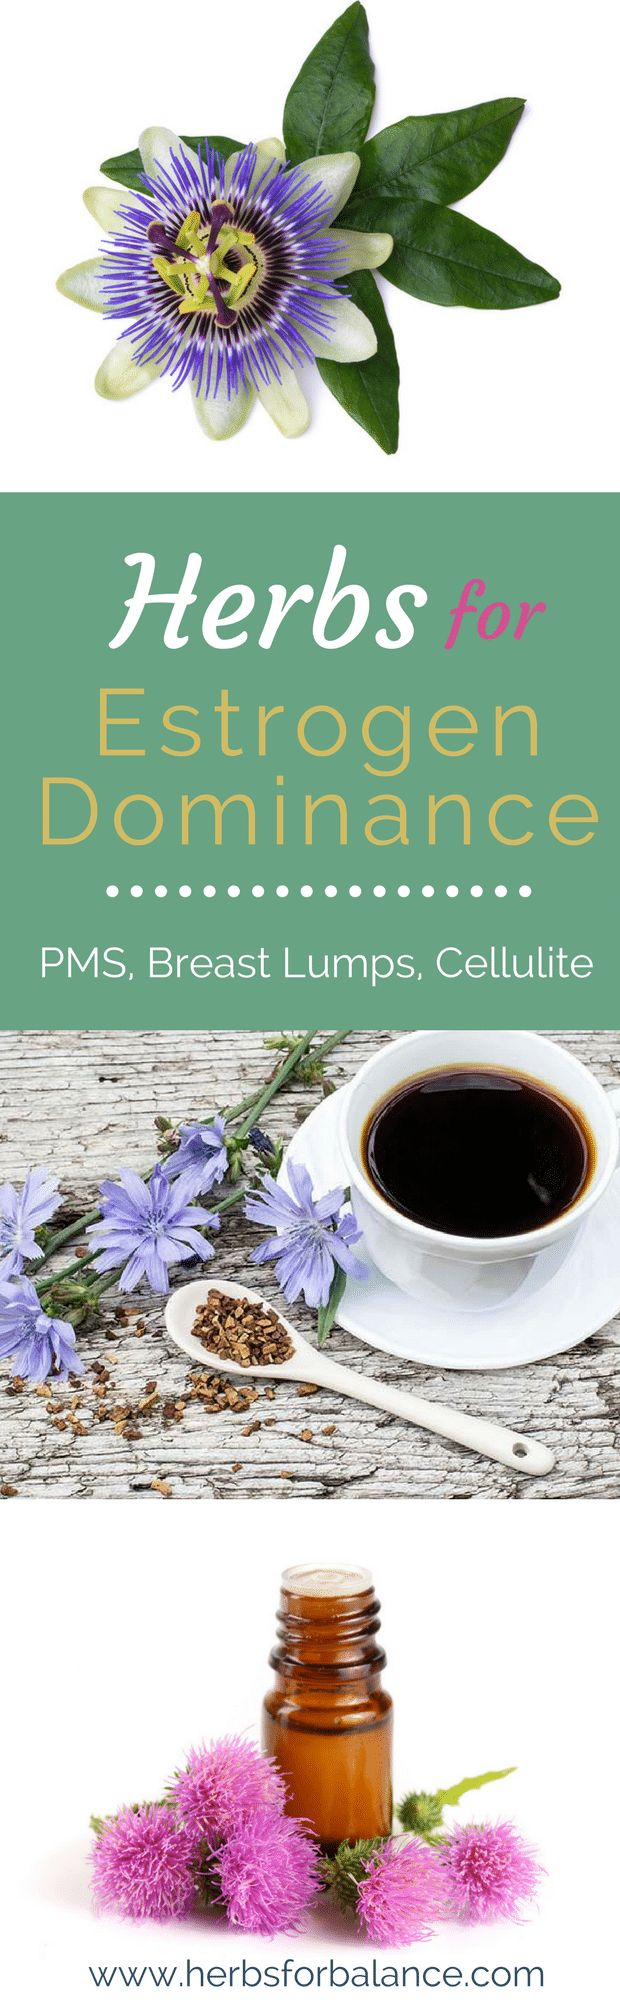 Chinese herbal insomnia tea - 7 Herbs To Manage Estrogen Dominance Pms Breast Lumps Cellulite